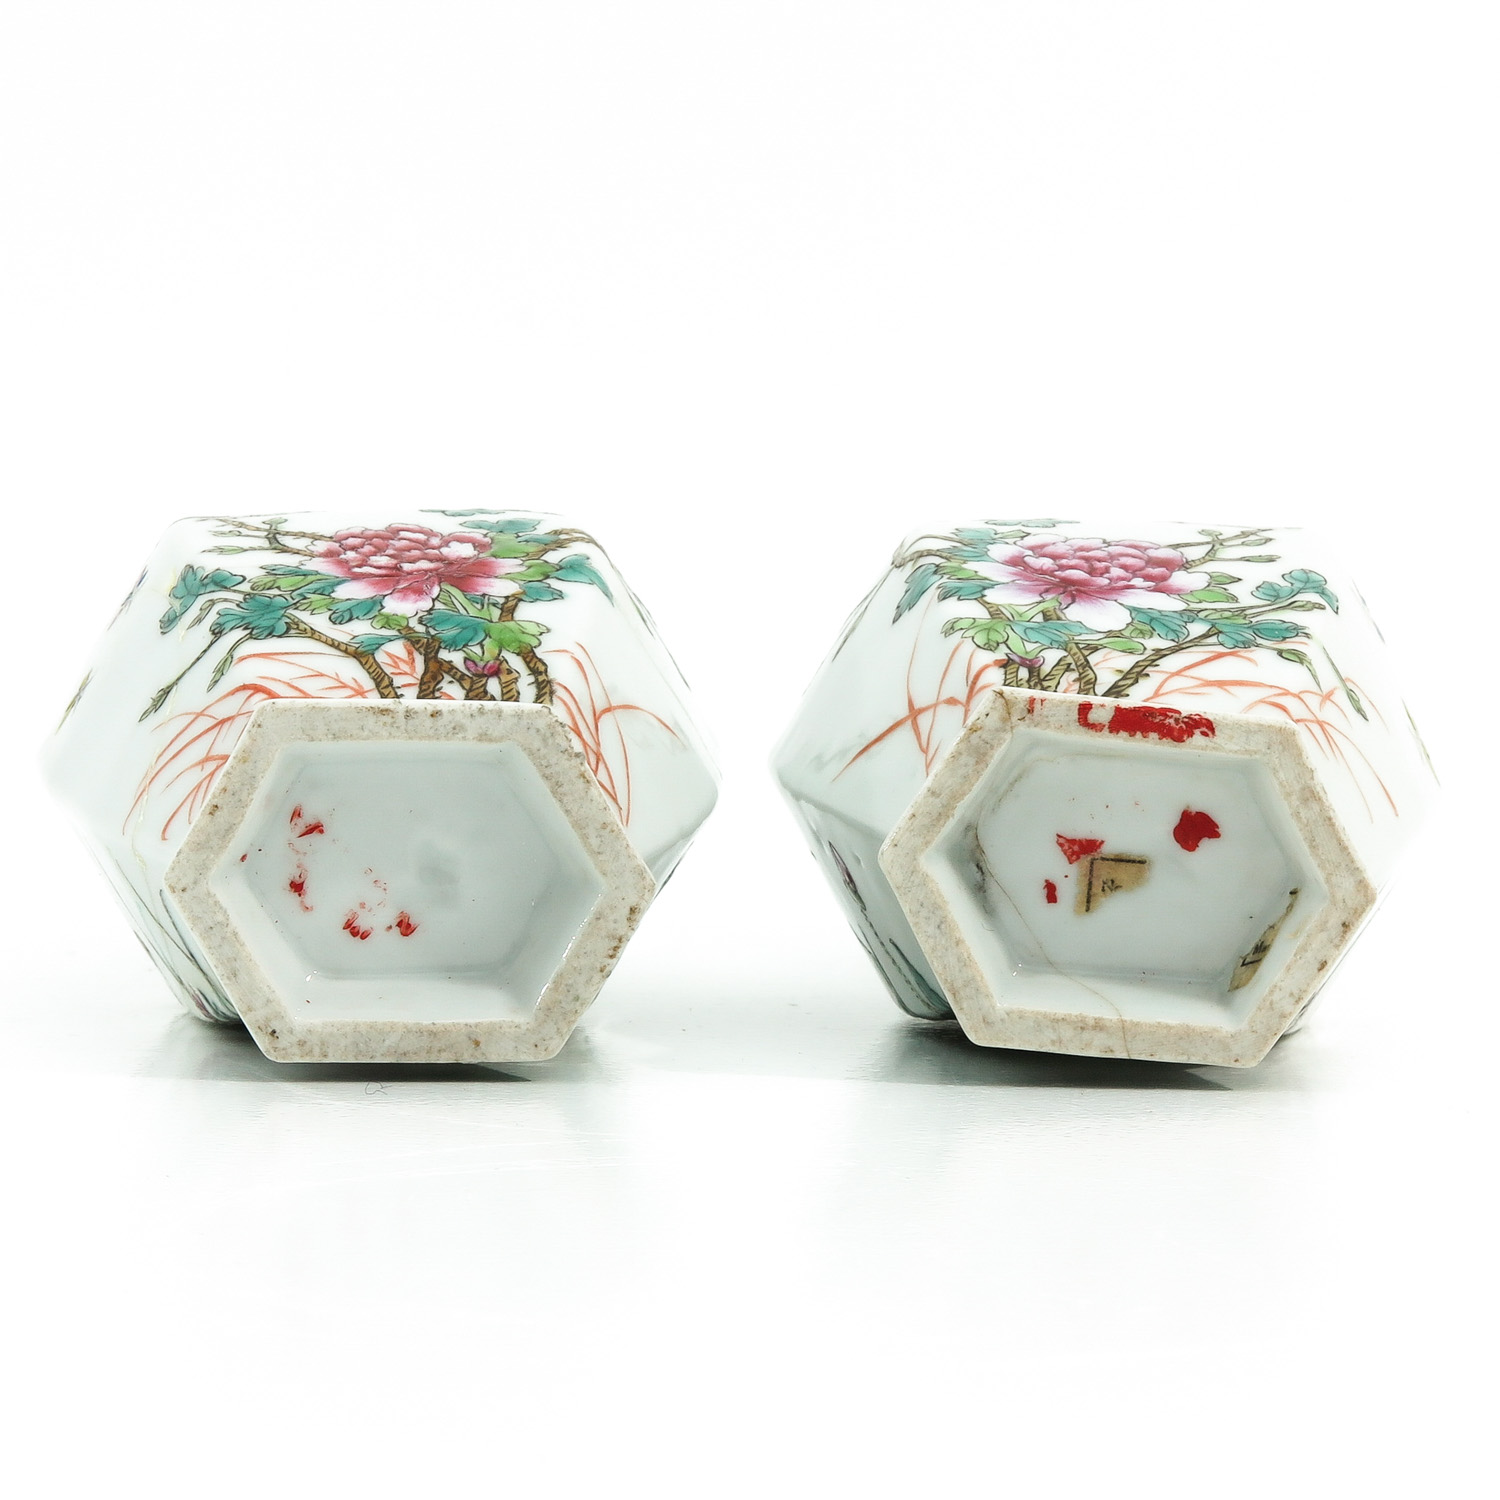 A Pair of Famille Rose Vases - Image 6 of 9